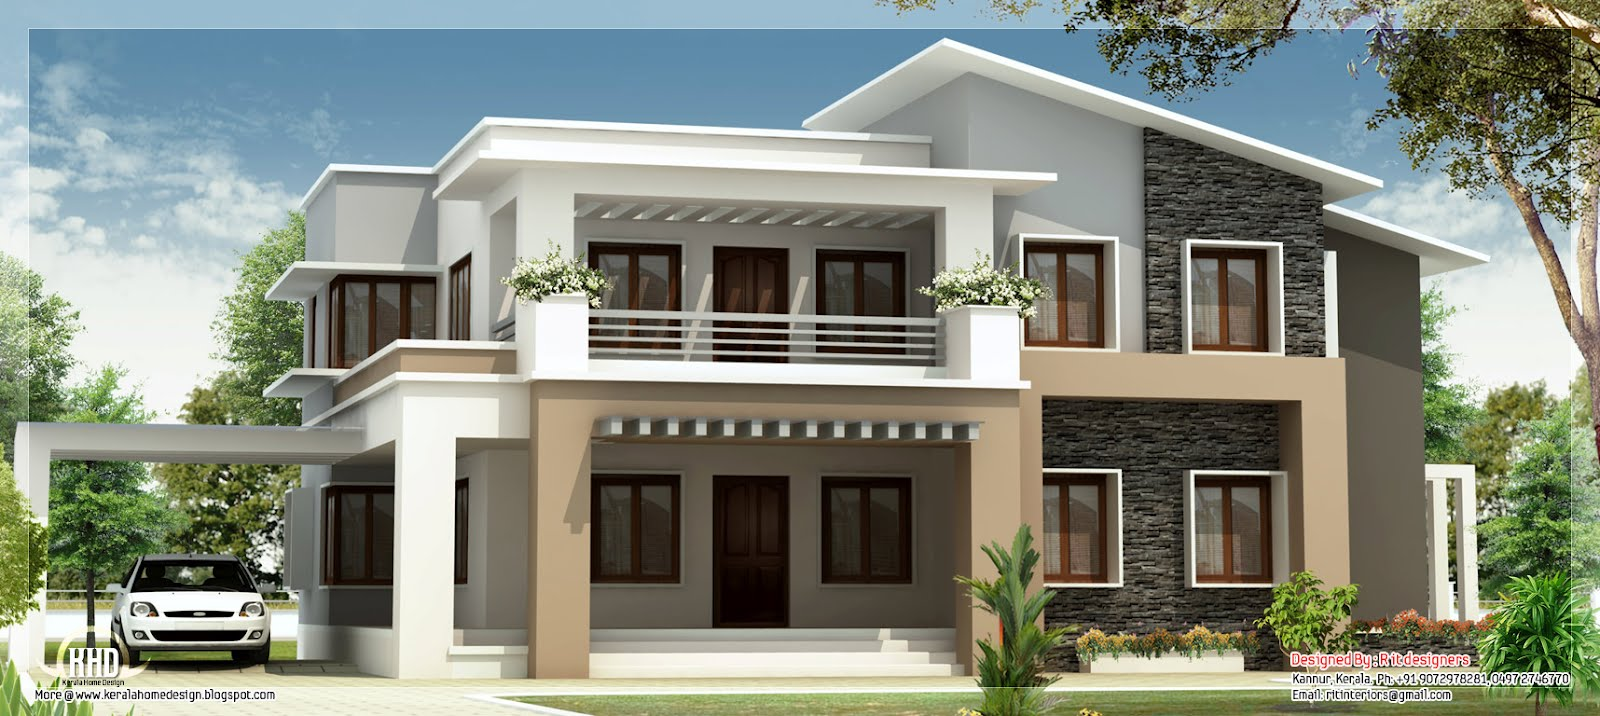 Modern mix double floor home design indian house plans Indian modern house